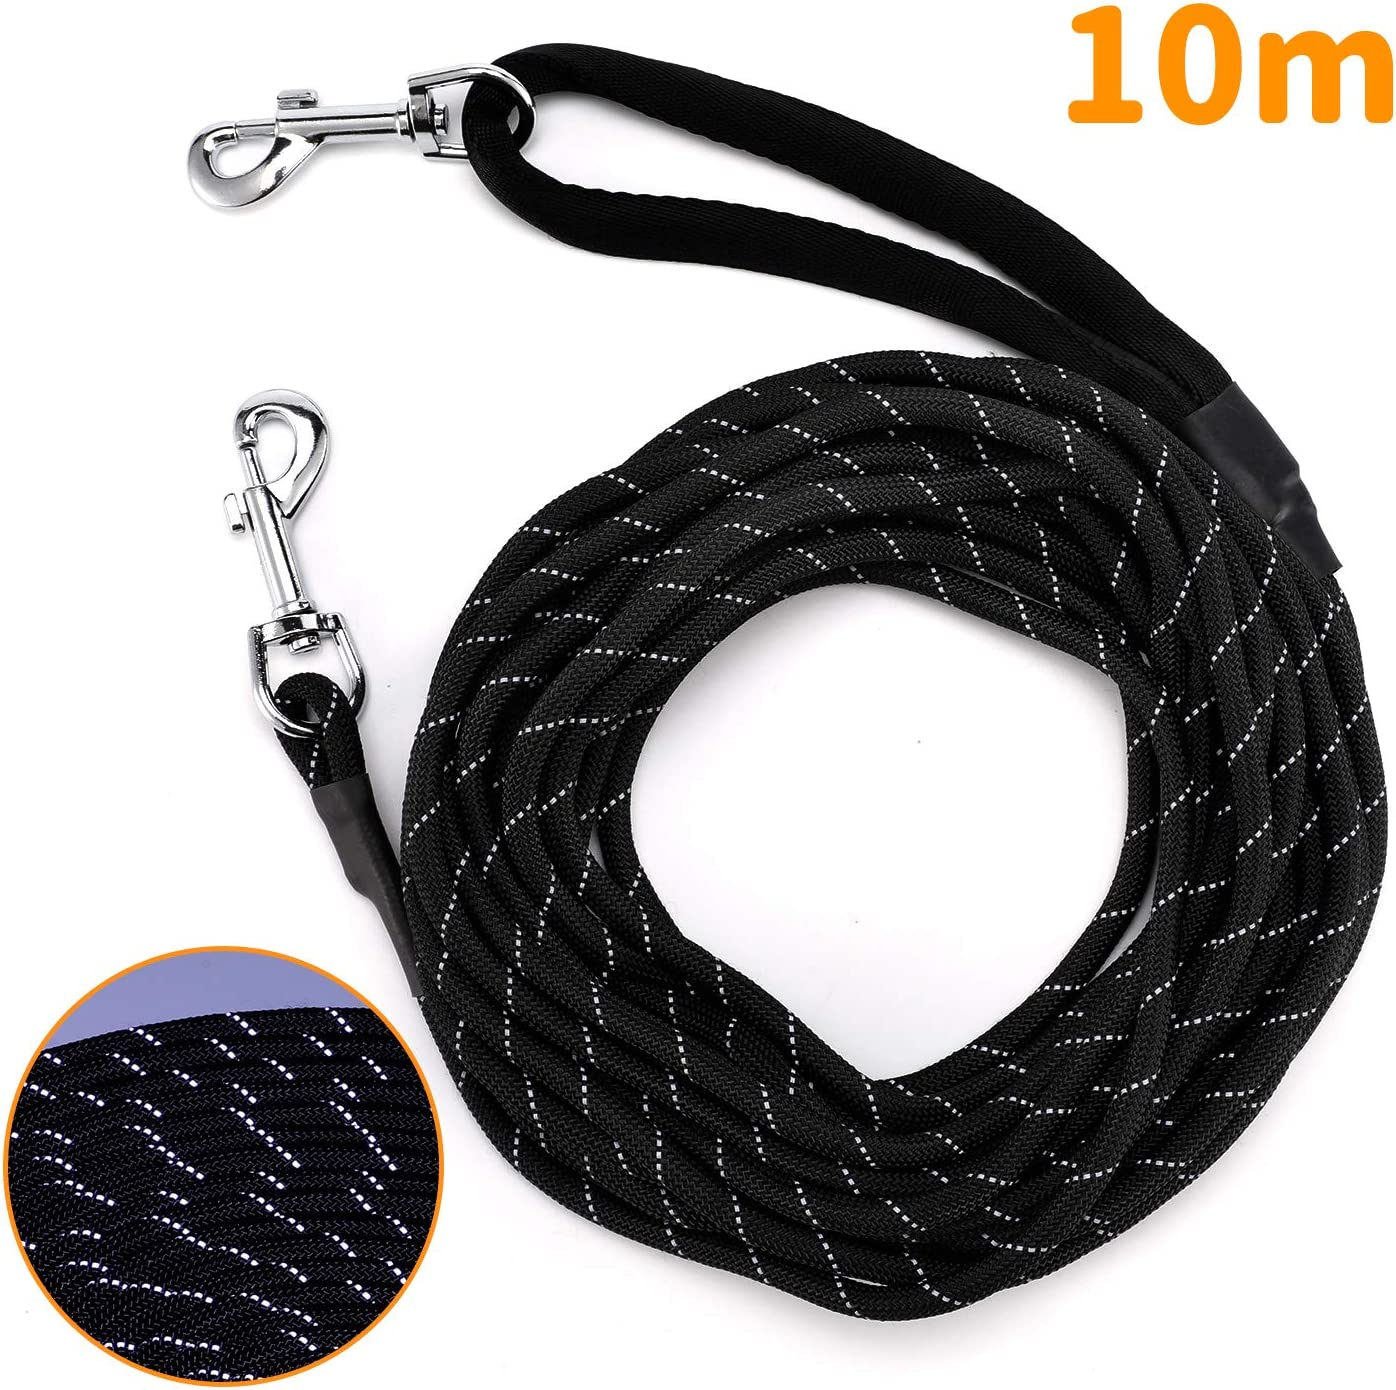 PETTOM Dog Training Lead Long Dog Line 10m 15m Extra Long Heave Duty Reflective Dog Leash for Small Medium Large Dogs Tracking Recall Training Outdoor S: 5m // 16ft, Black